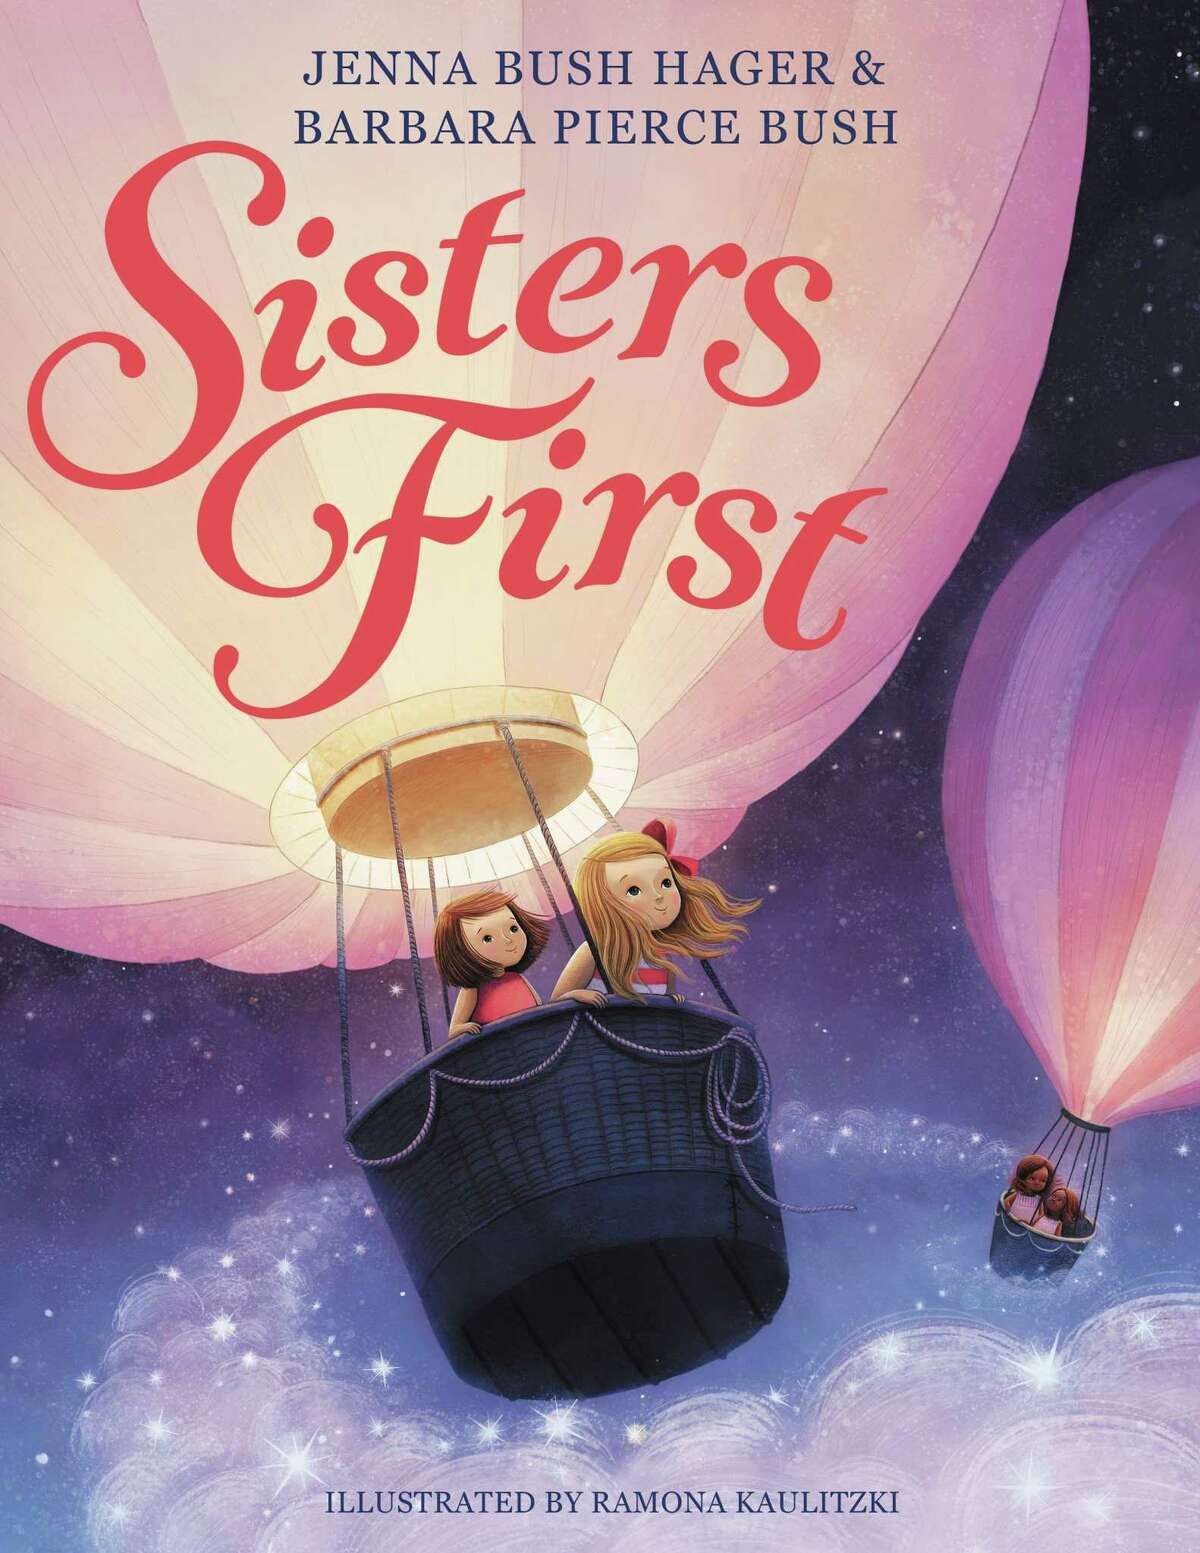 """Twin sisters Jenna Bush Hager and Barbara Pierce Bush have written their first children's book, """"Sisters First"""" with illustrations by Ramona Kaulitzki (Hatchette Books, $18.99)"""